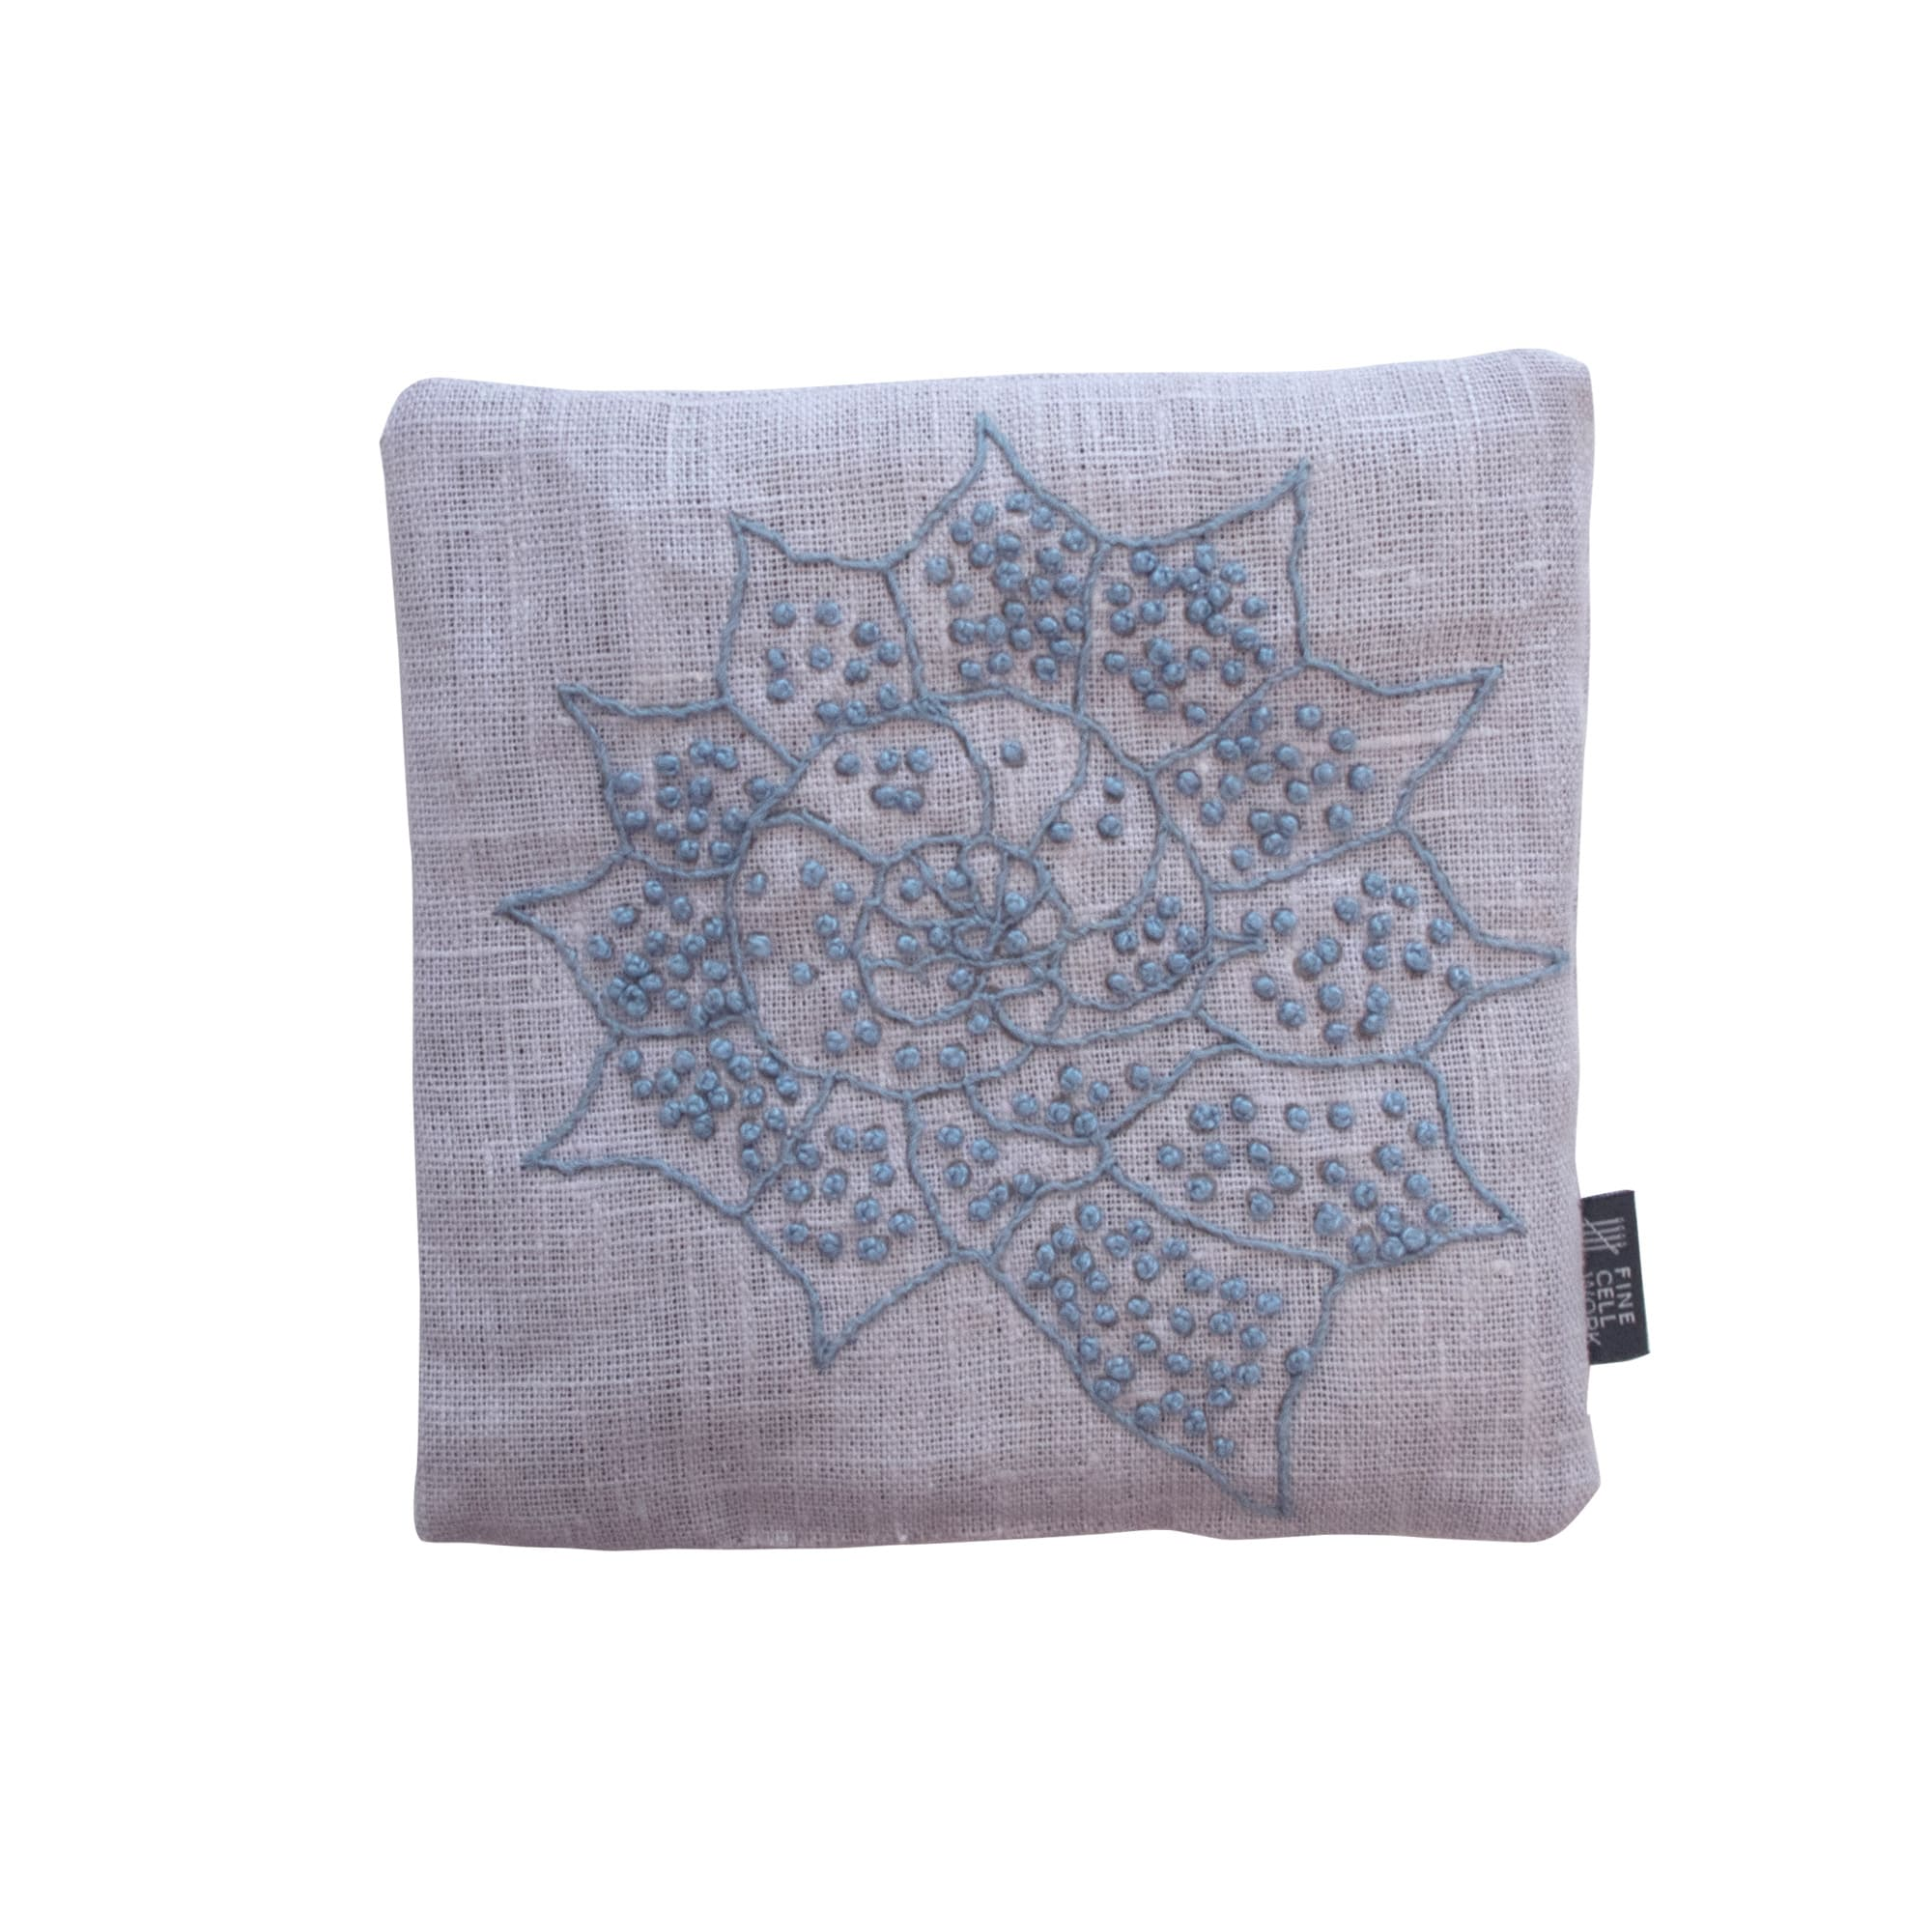 Melissa Wyndham Shell Star Lavender Bag Blue Hand Embroidered Linen Fine Cell Work